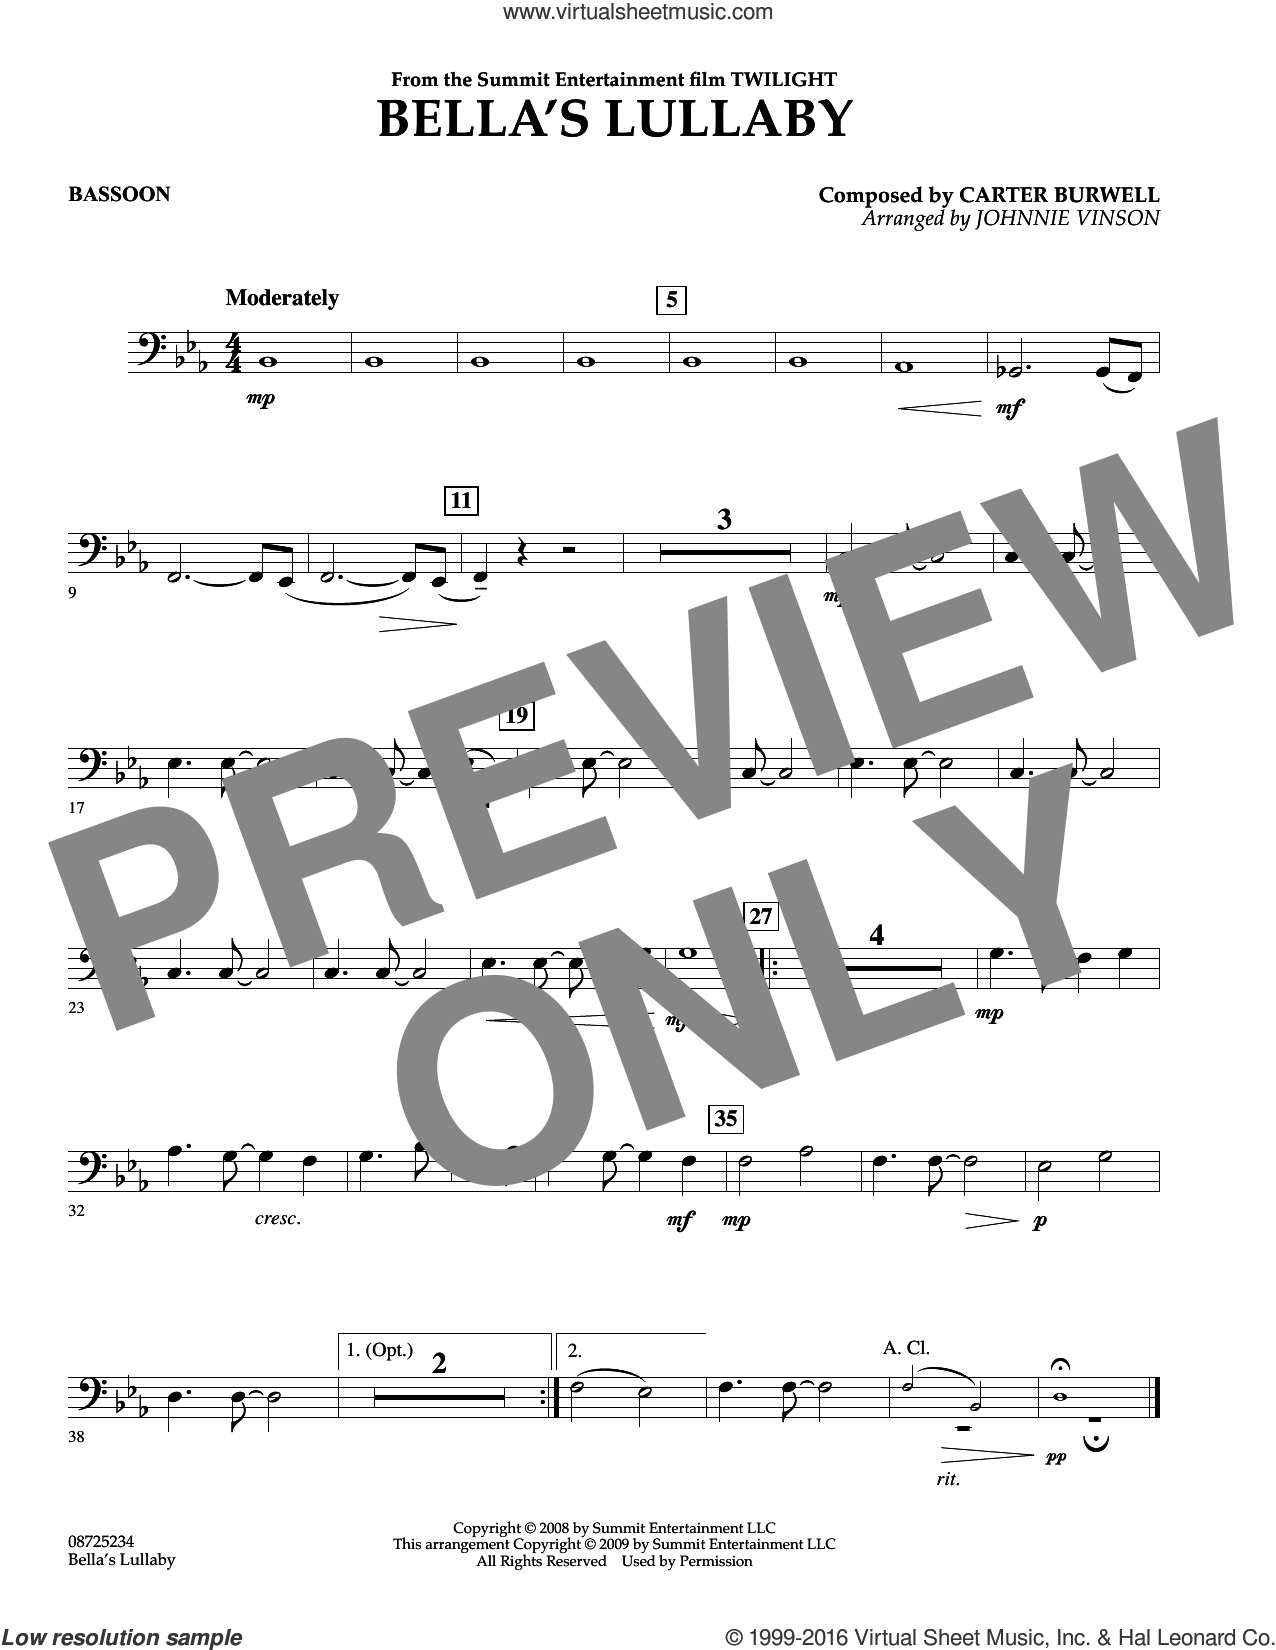 Bella's Lullaby (from Twilight) sheet music for concert band (bassoon) by Carter Burwell and Johnnie Vinson, intermediate skill level